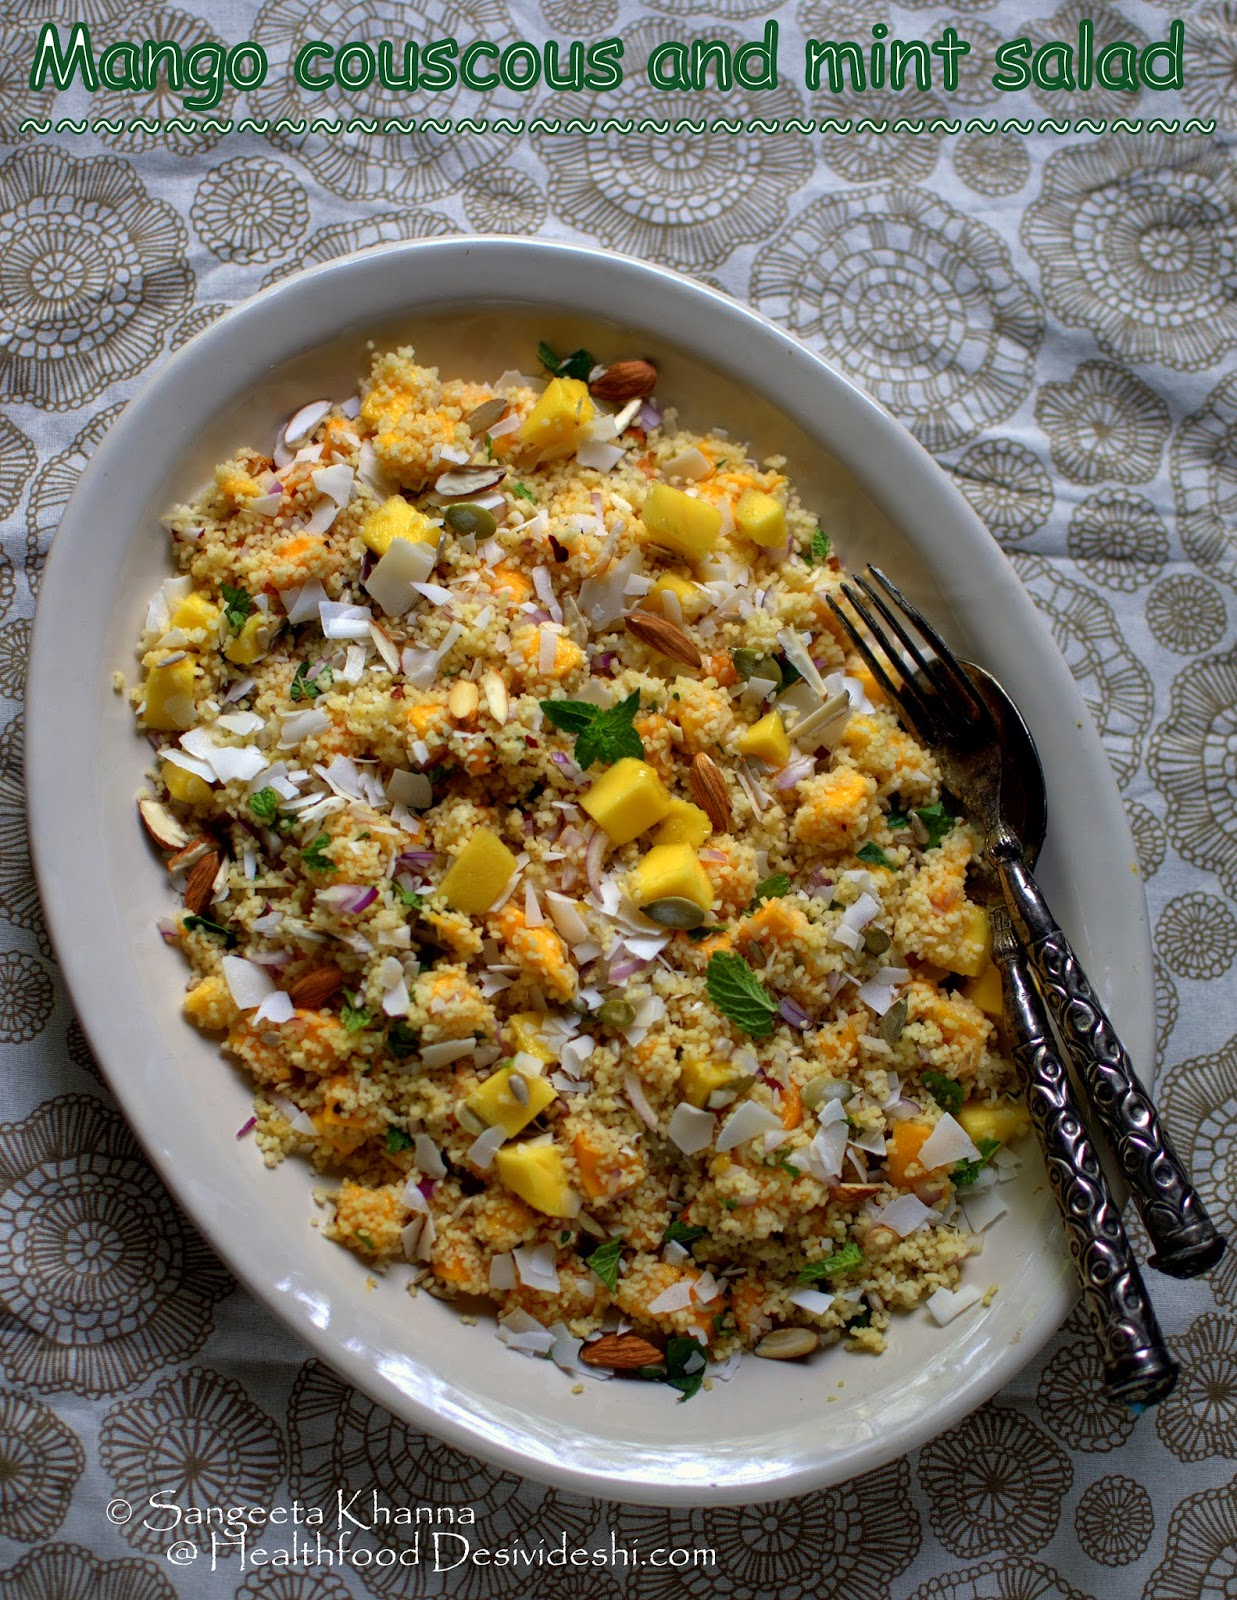 mango couscous salad with mint and my contribution to the cover story in Good Housekeeping India